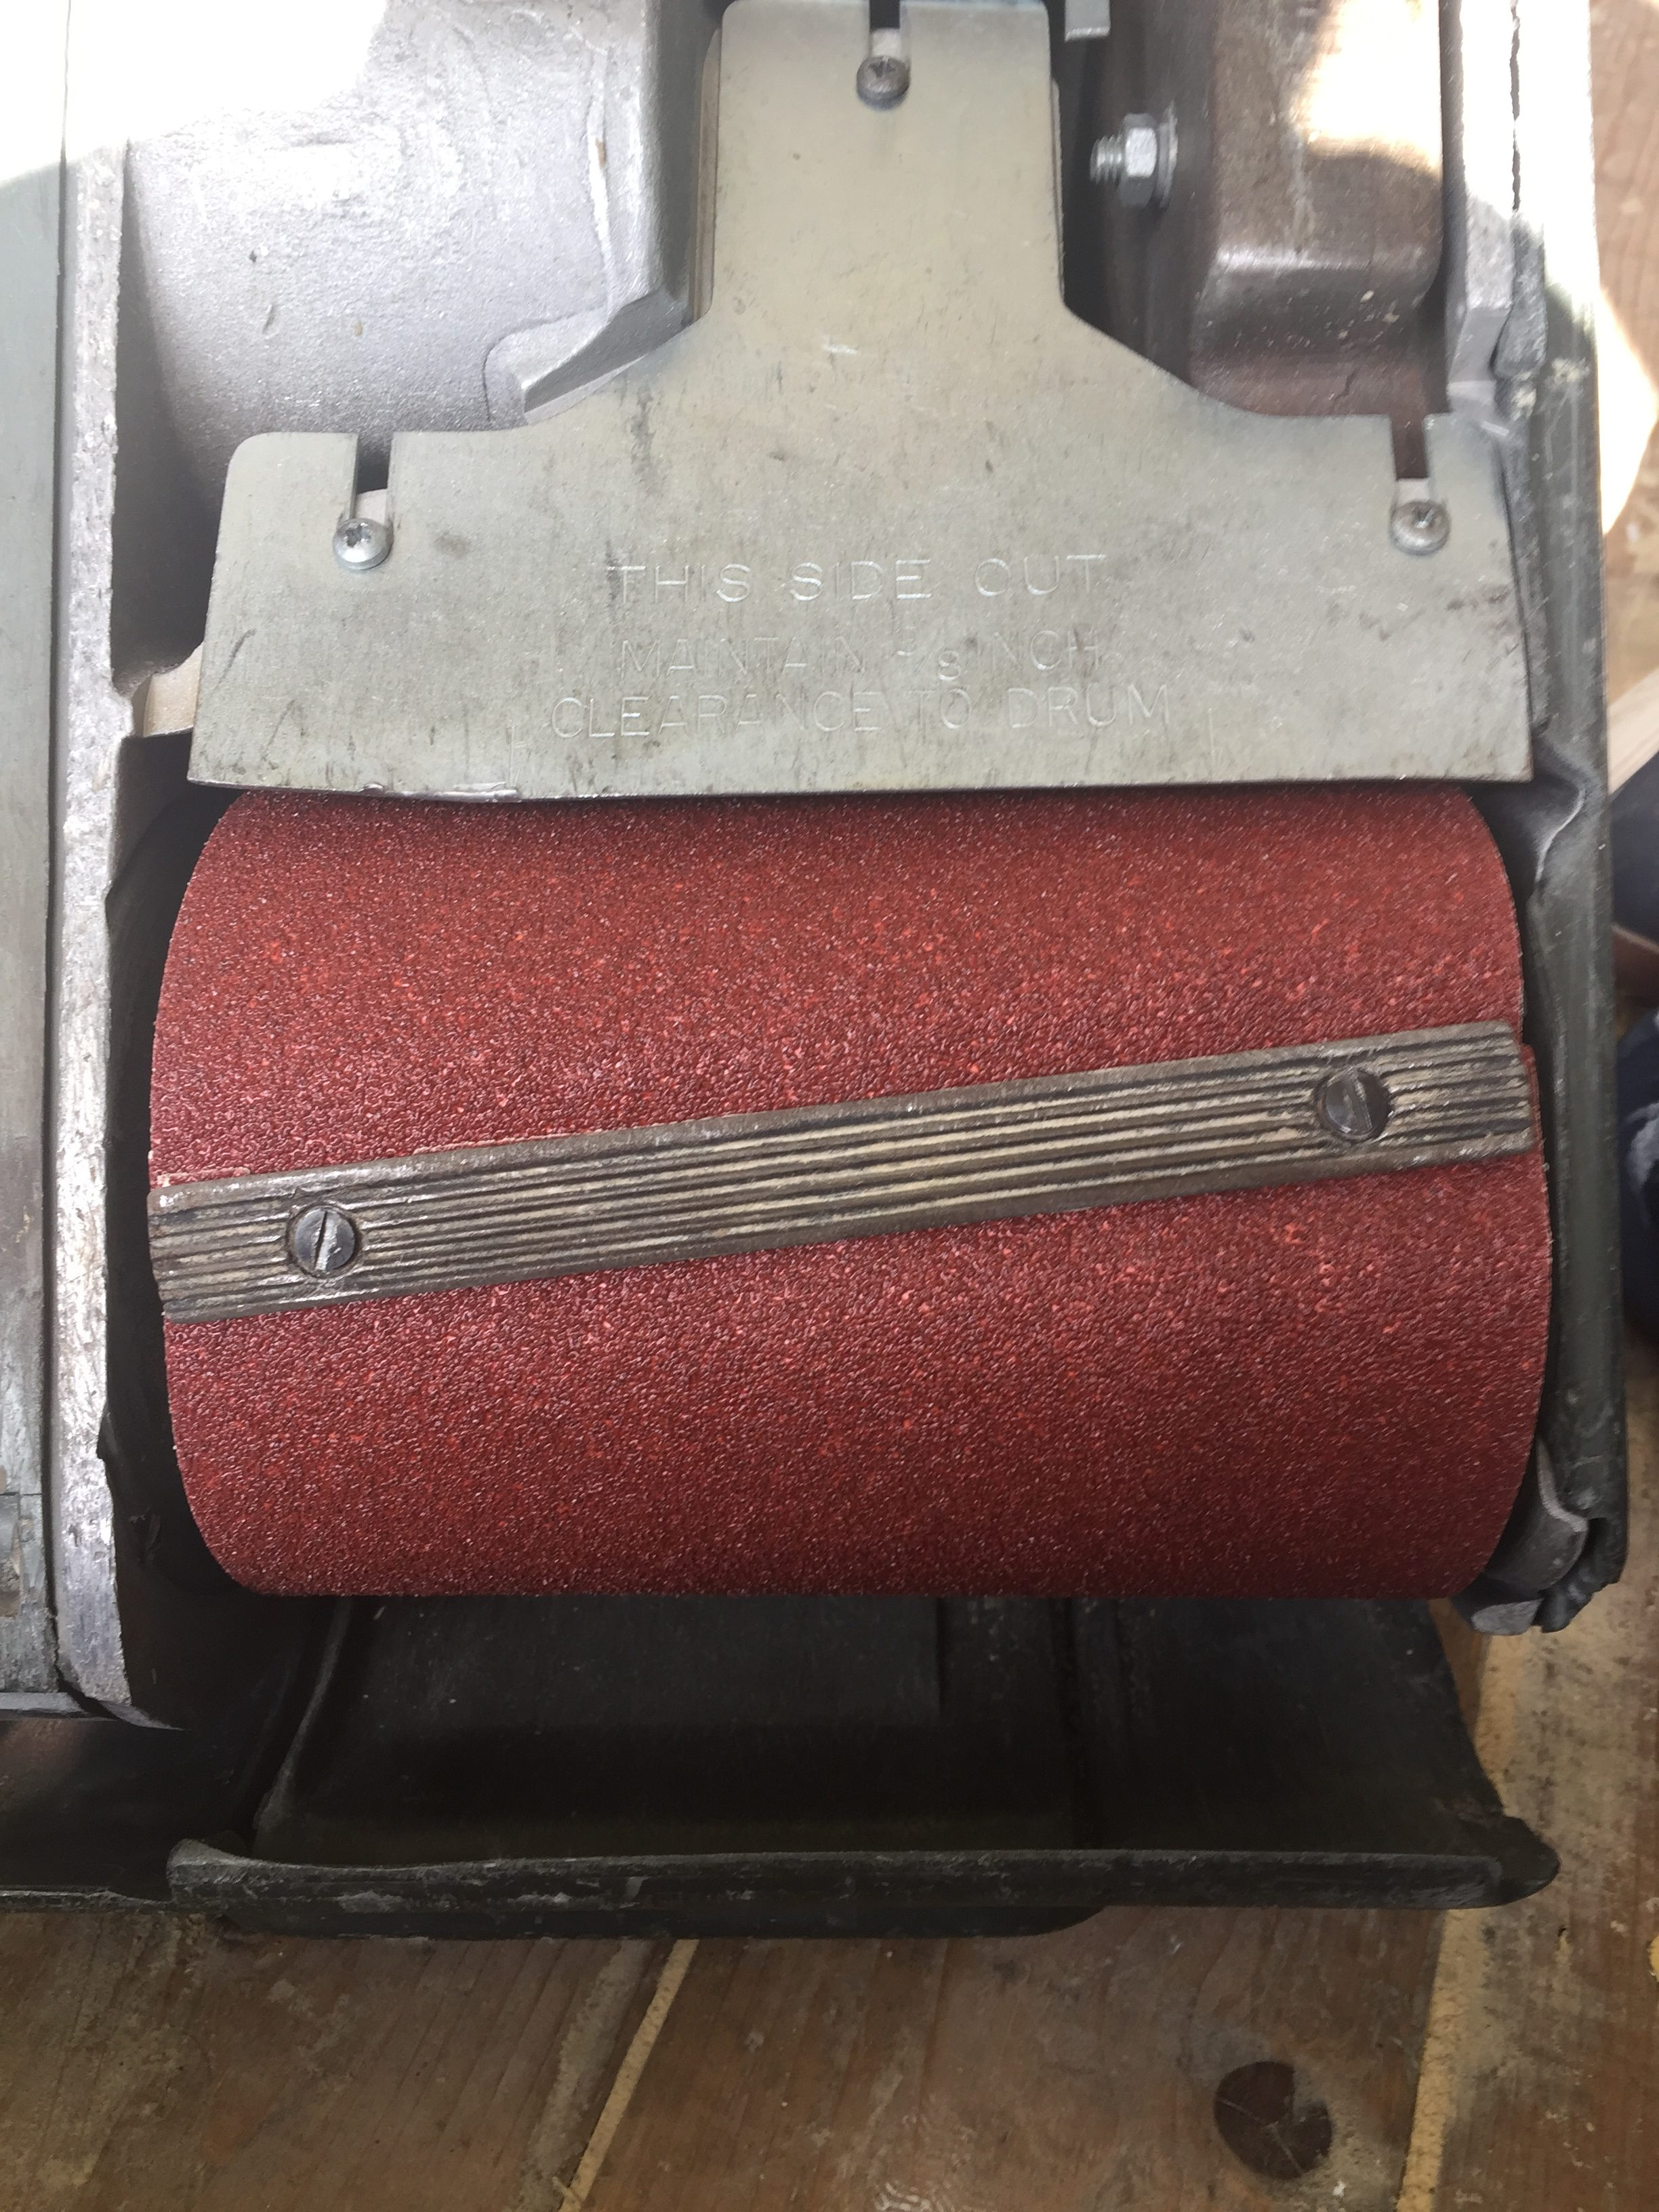 Drum sander with sandpaper